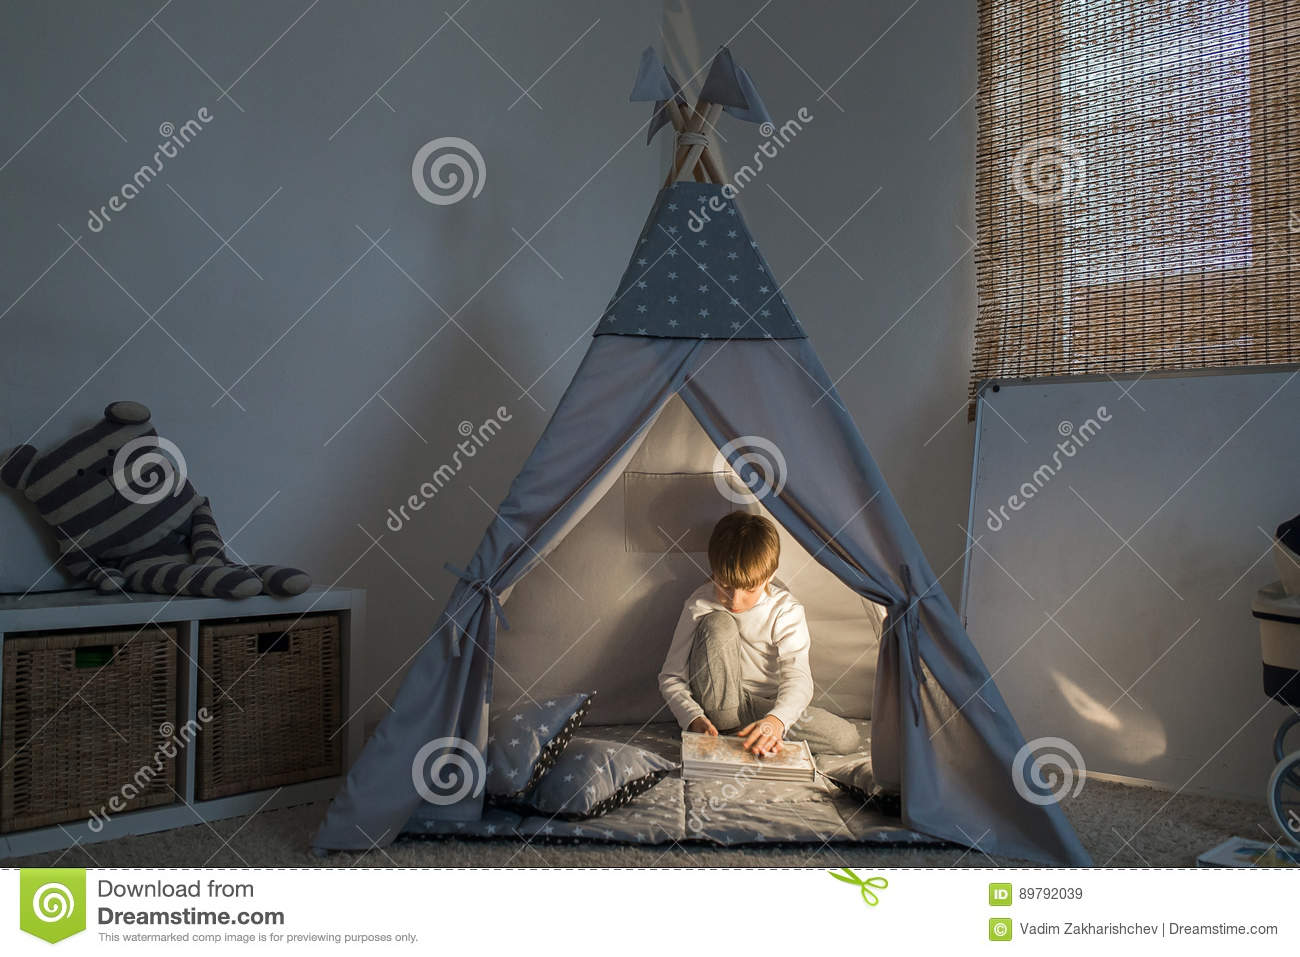 Boy playing in the teepee